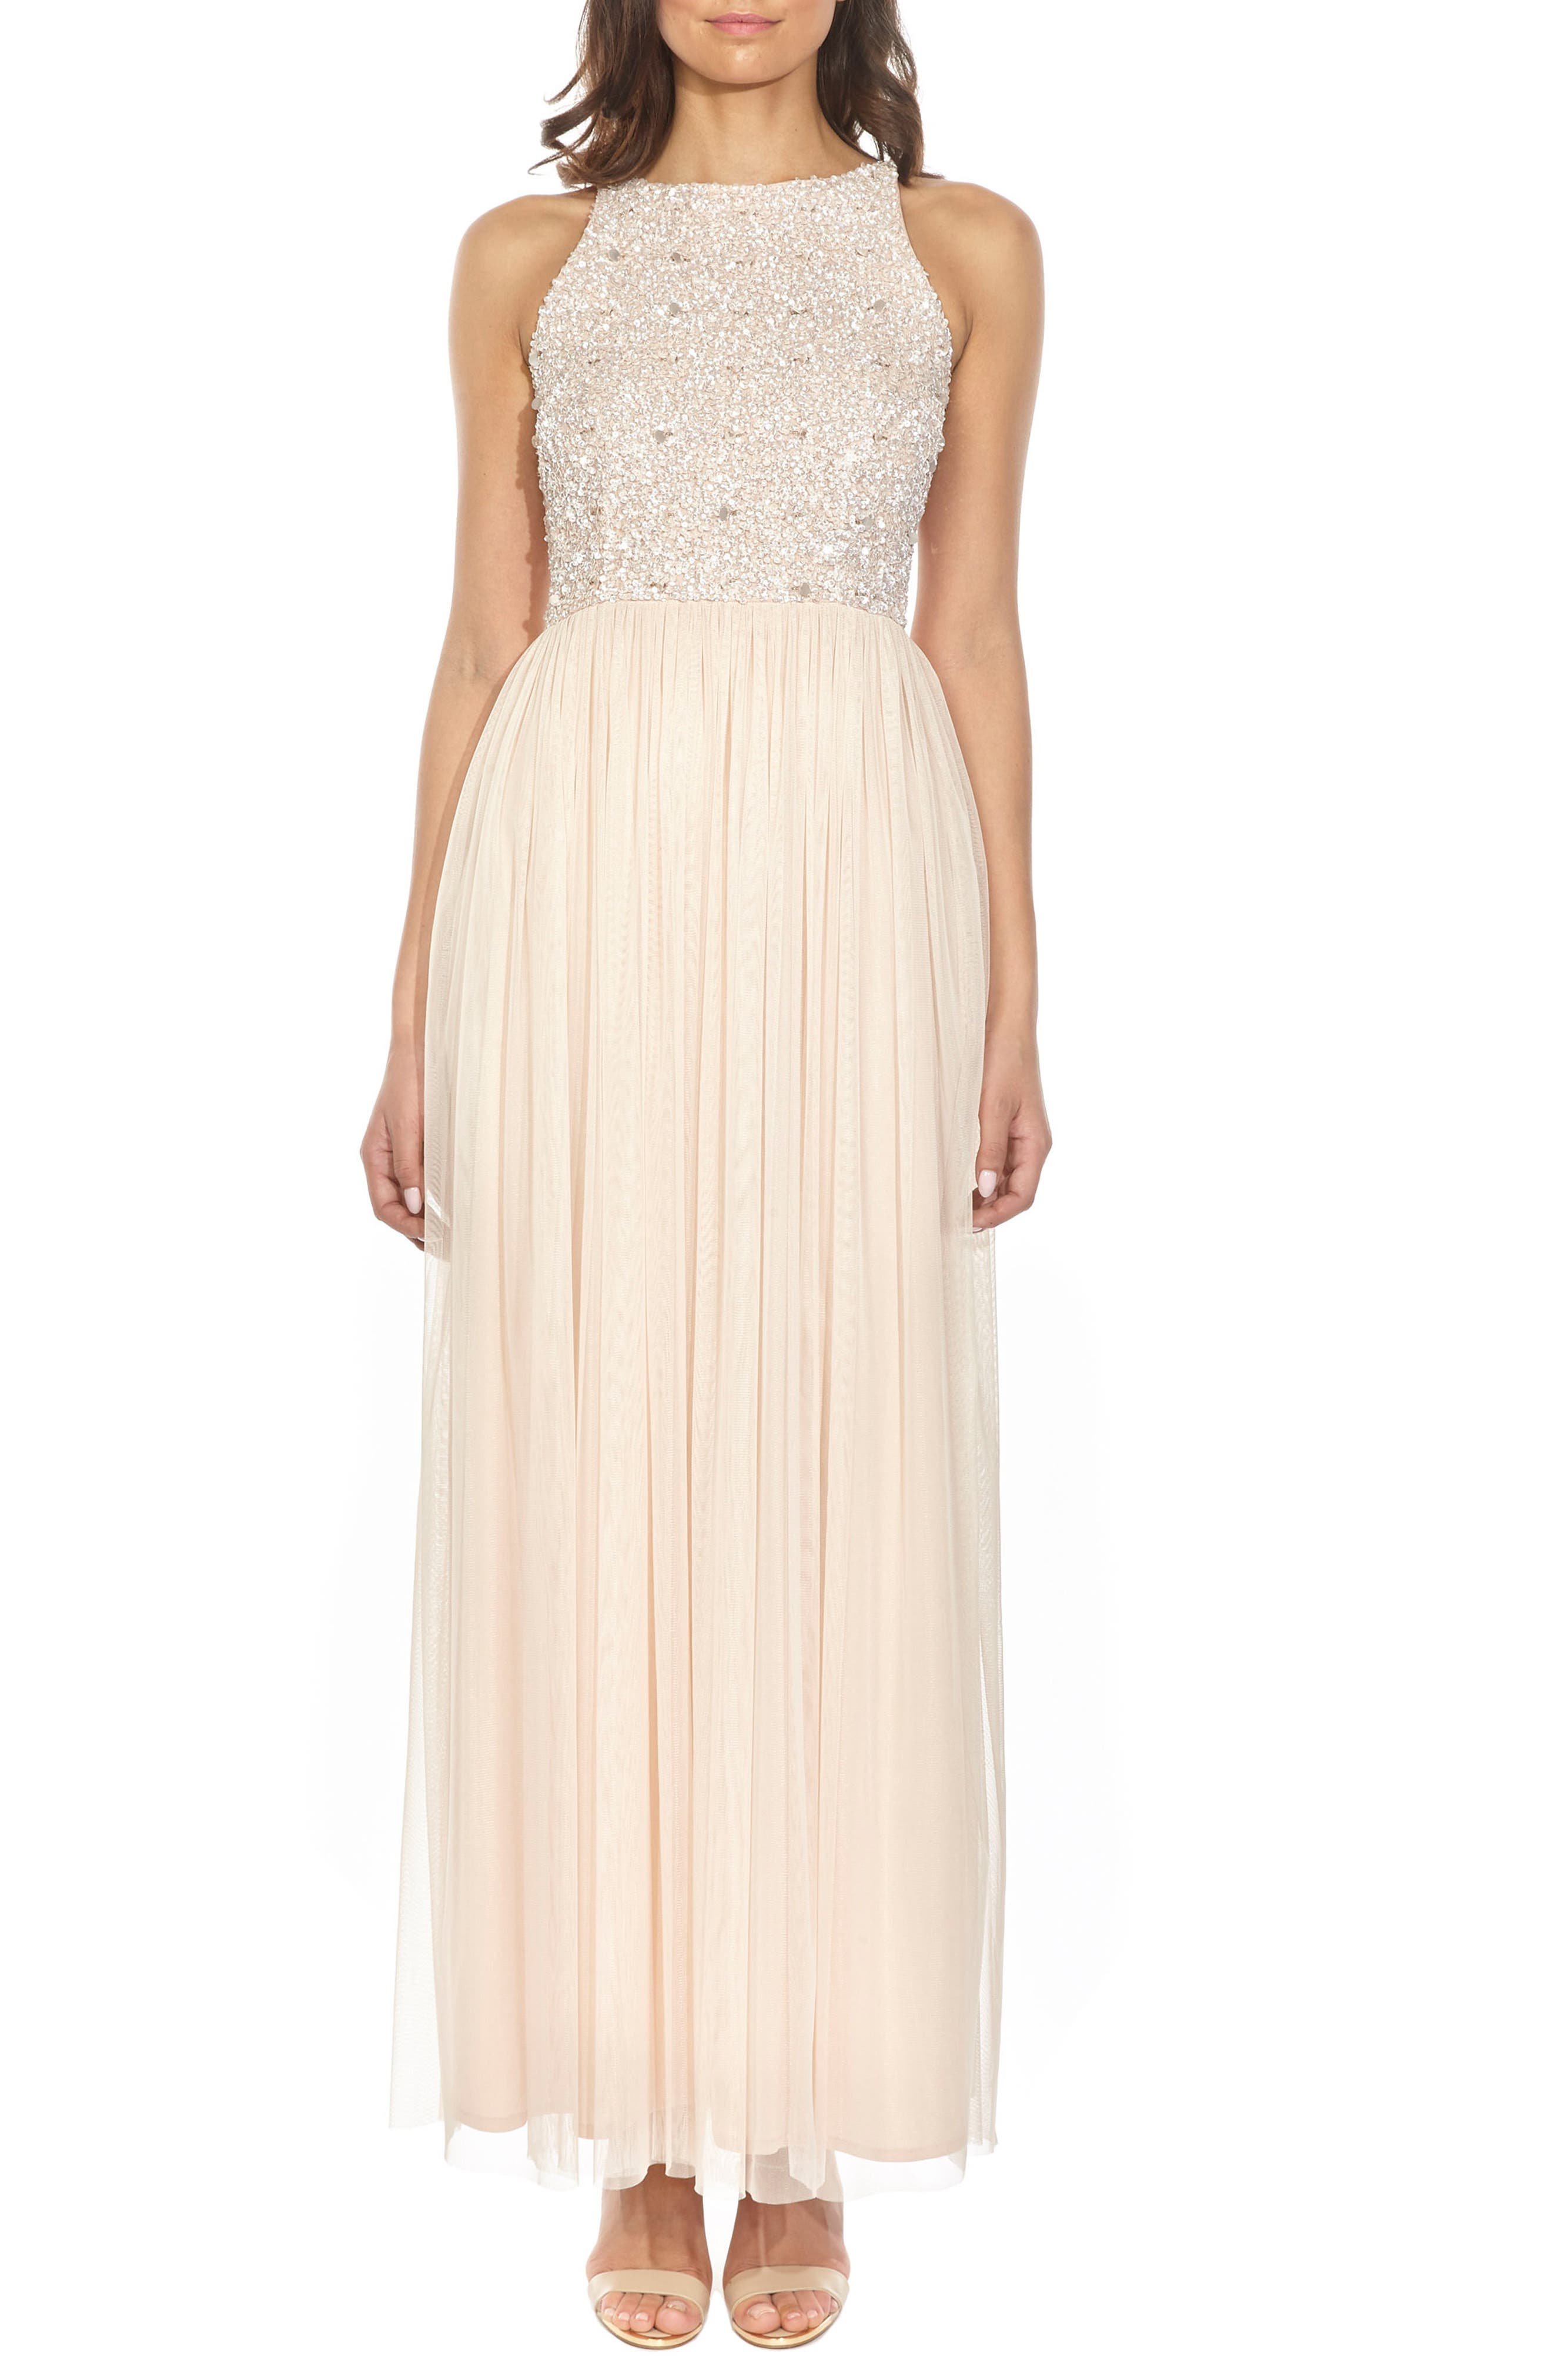 Picasso Embellished Bodice Maxi Dress,                             Main thumbnail 1, color,                             Nude